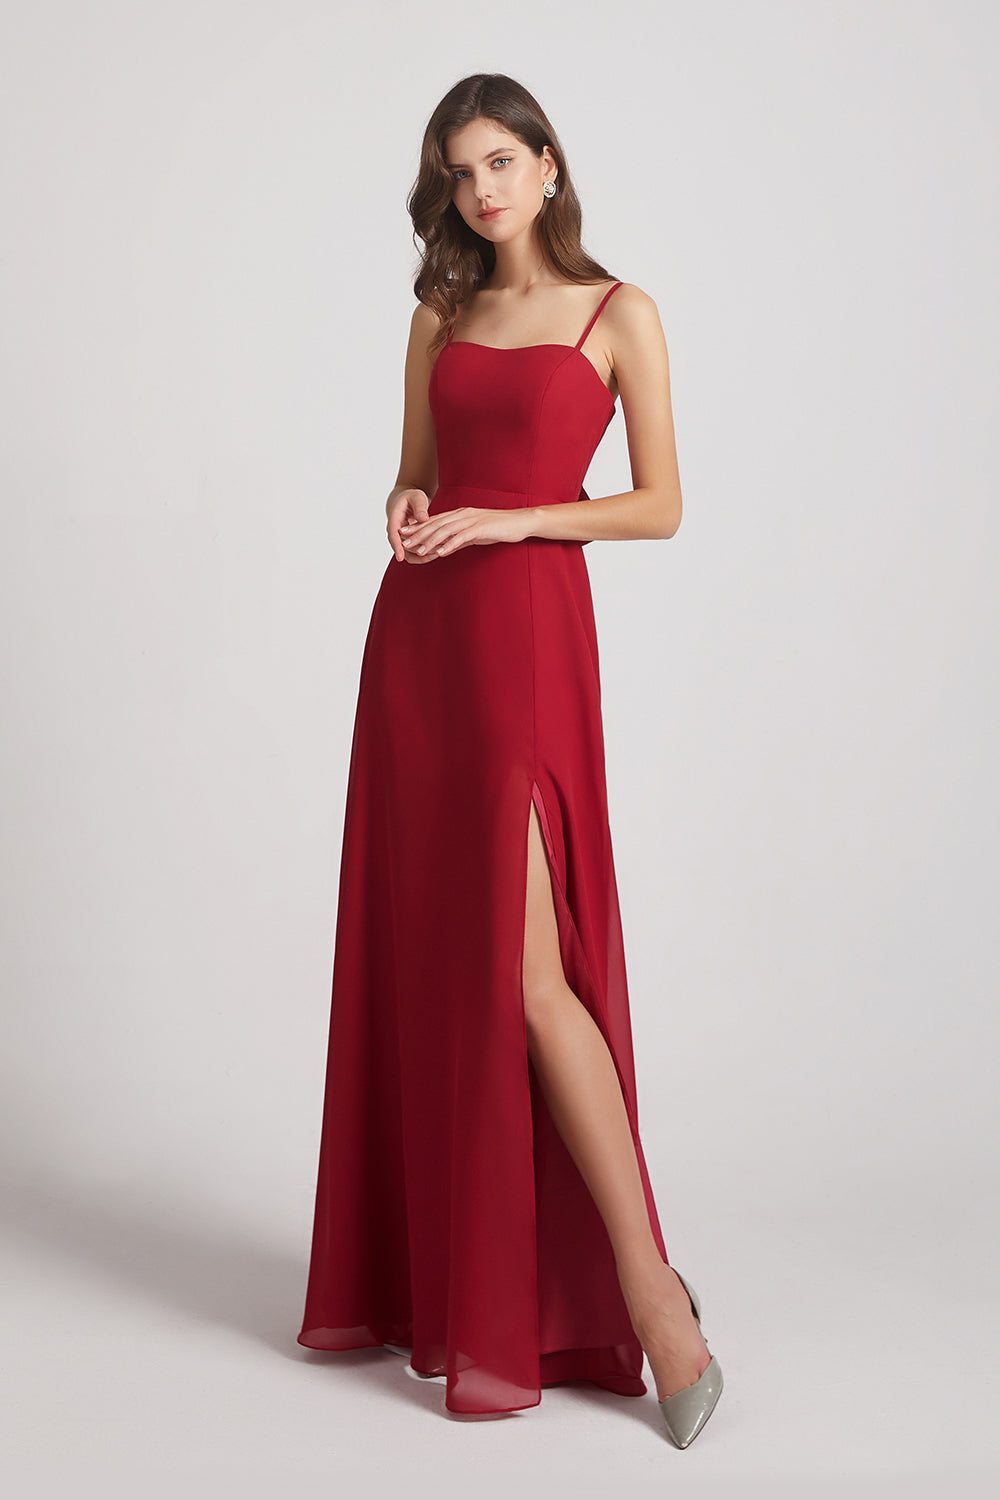 spaghetti side split chiffon lace-up bridesmaids dress